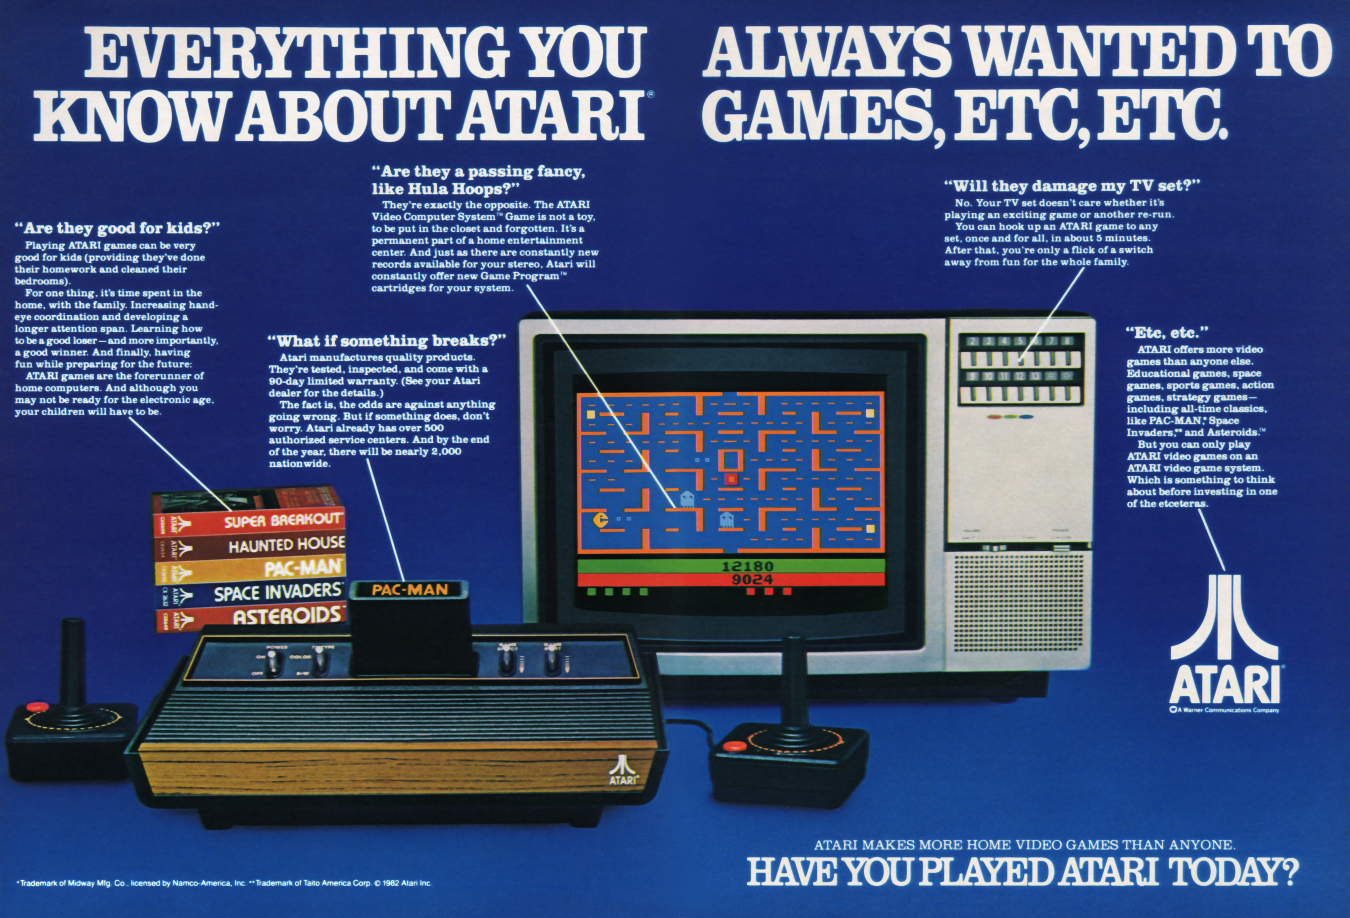 Atari's Promise Means It's Not Cheating